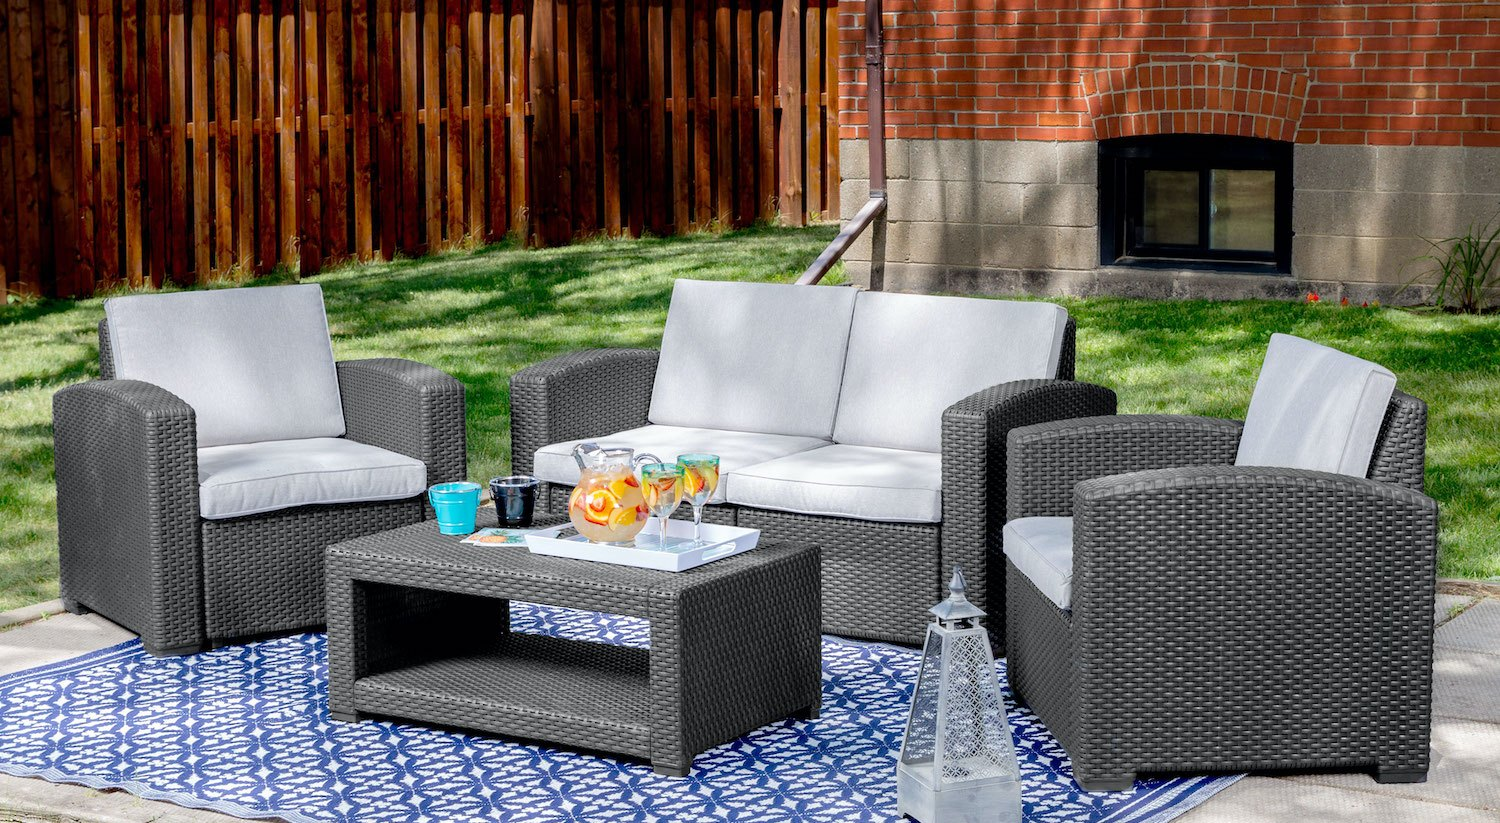 miami outdoor furniture collection